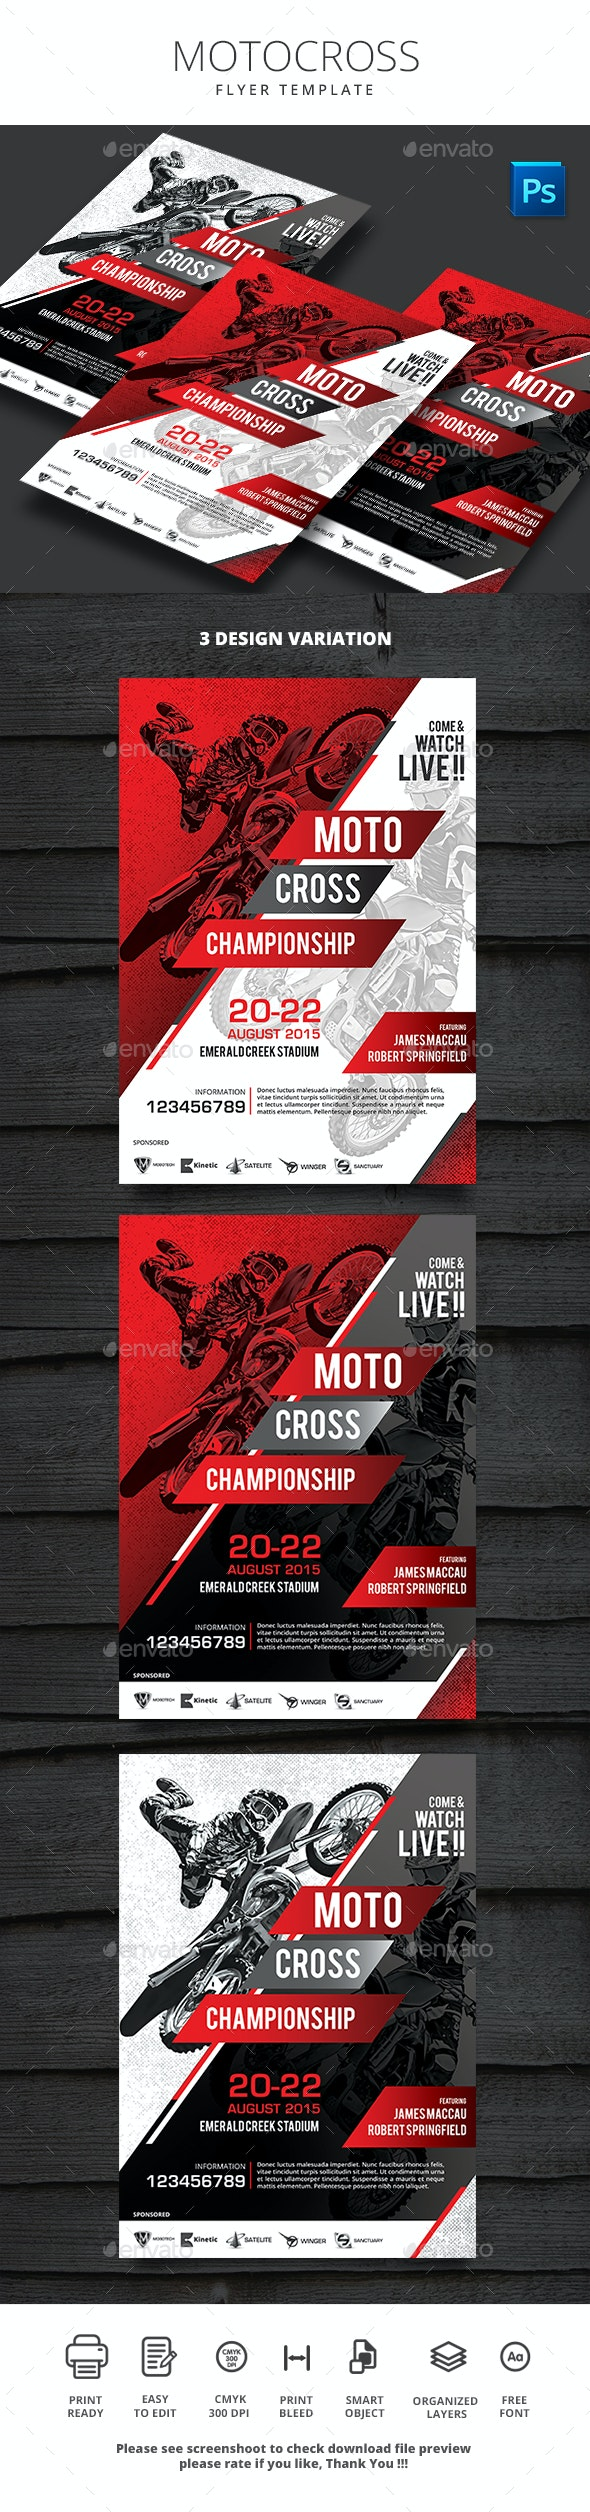 Motocross Flyer - Sports Events